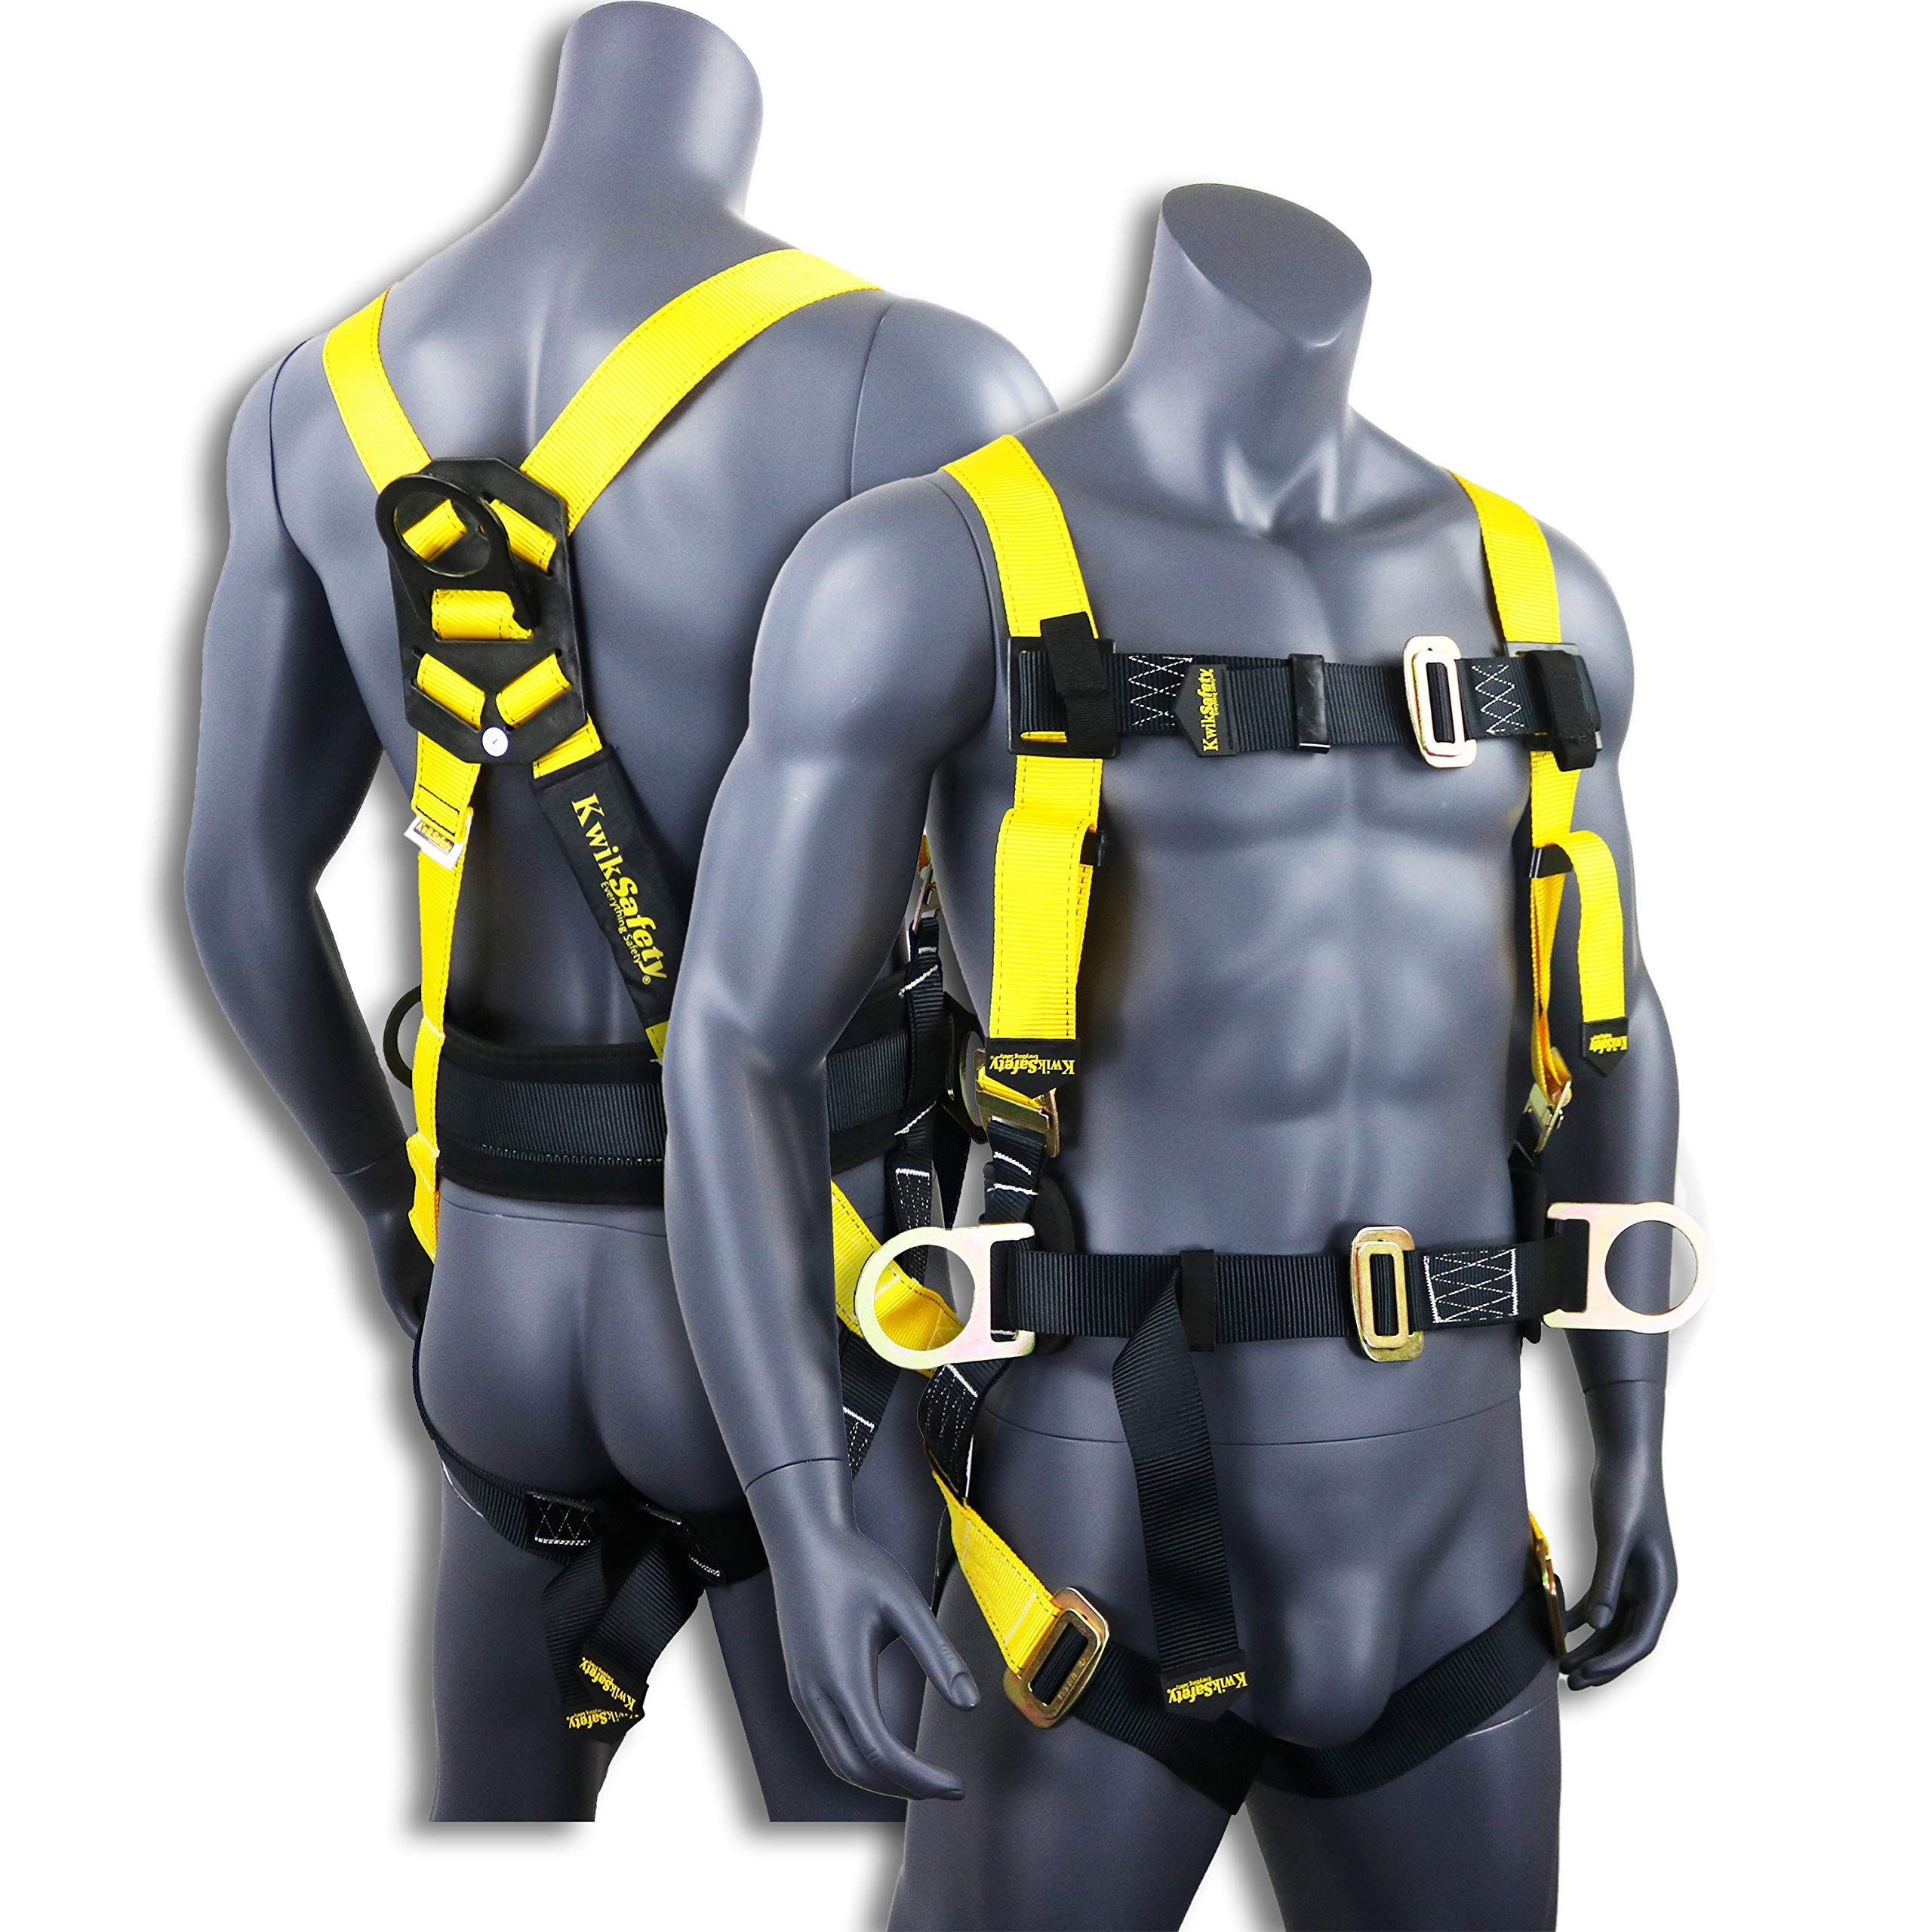 KwikSafety (Charlotte, NC) HURRICANE | OSHA ANSI Fall Protection Full Body Safety Harness w/Back Support | Personal Protective Equipment | Dorsal Ring Side D-Rings | Construction Industrial Roofing by KwikSafety